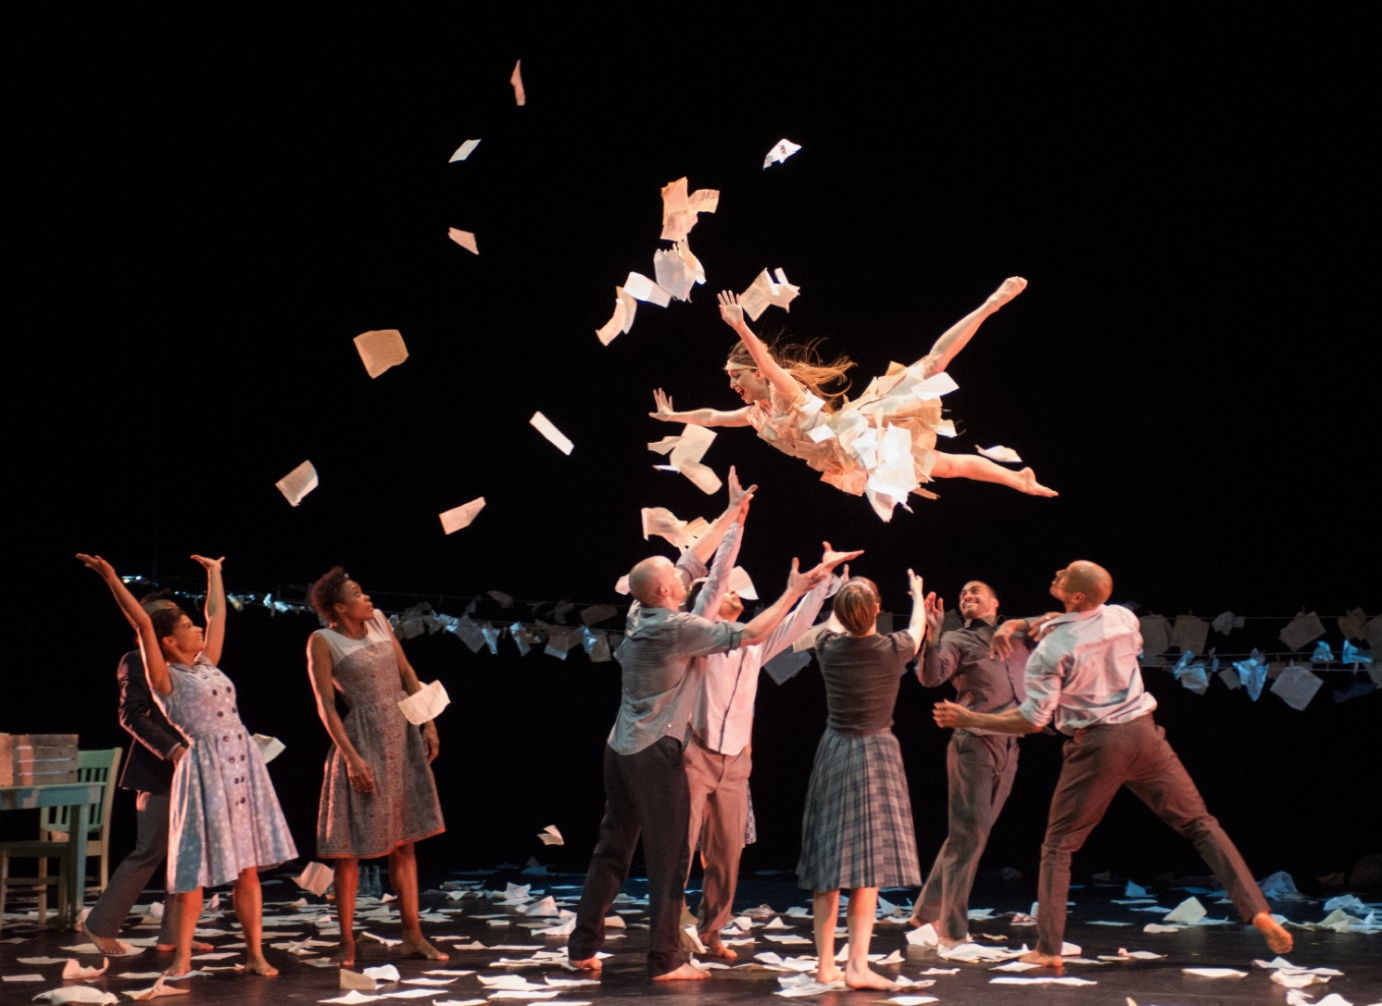 dancer flying through the air as paper sheets fly and hang in the background on a close line